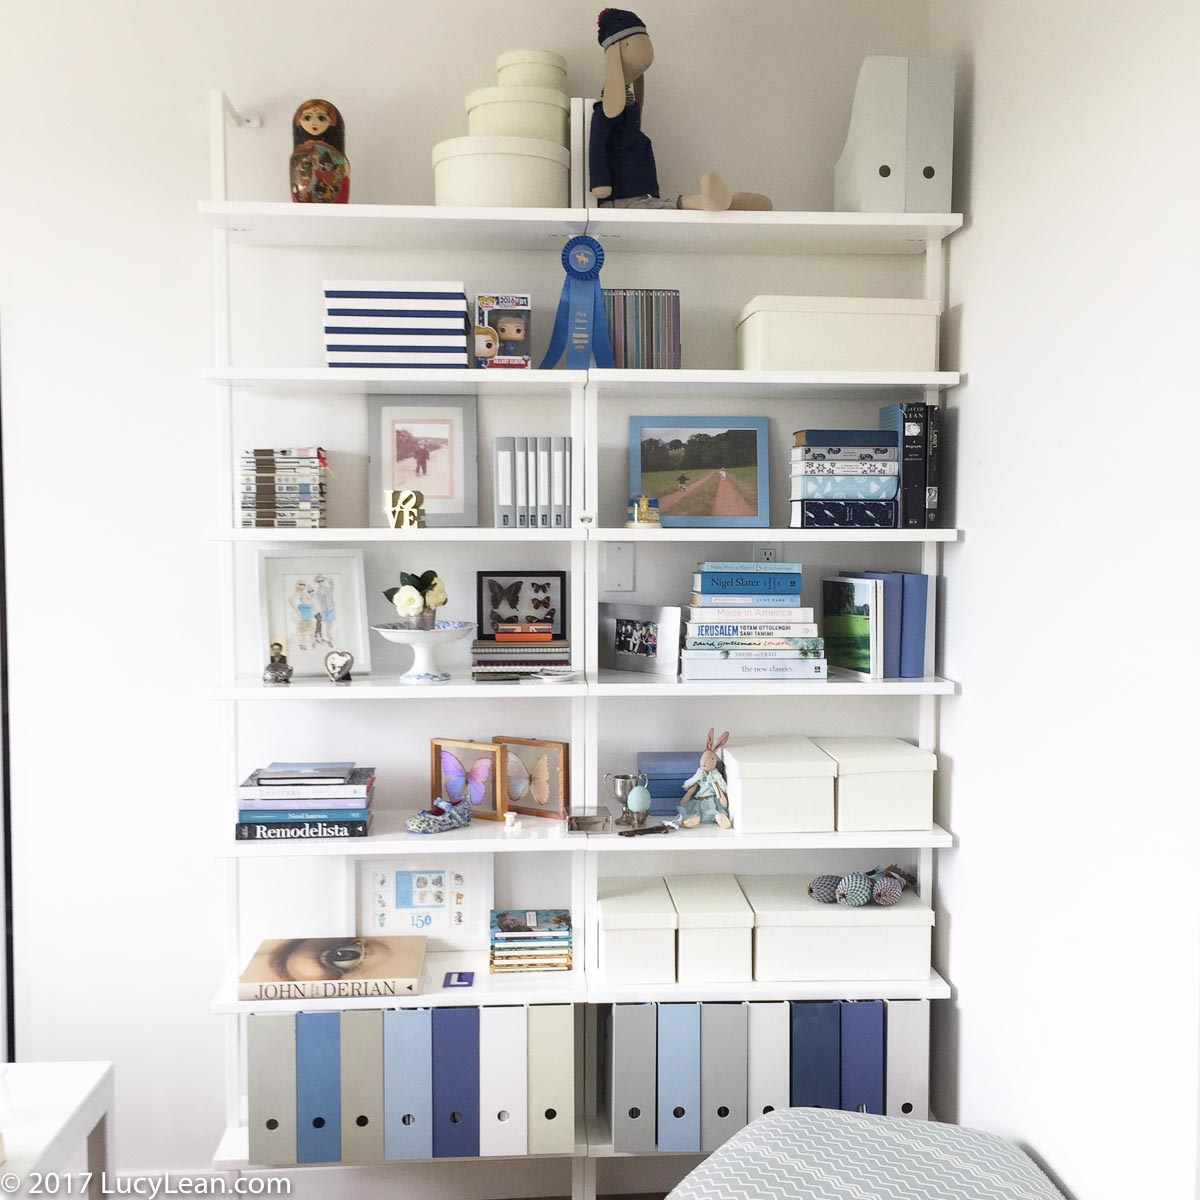 Office Spring Clean - New Shelves in 50 Shades of Blue